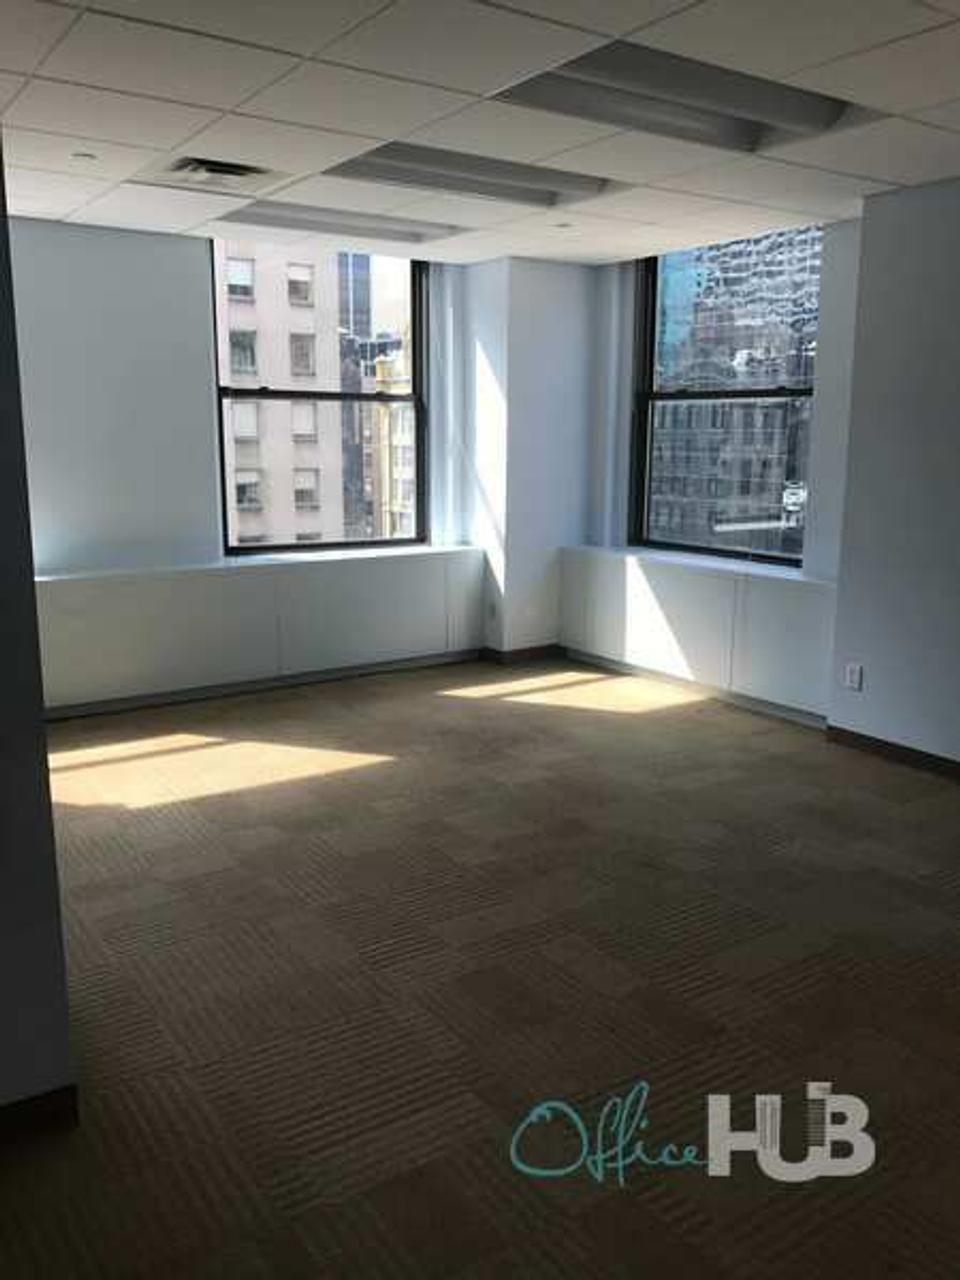 1 Person Private Office For Lease At 535 5th Avenue, New York, New York, 10017 - image 1